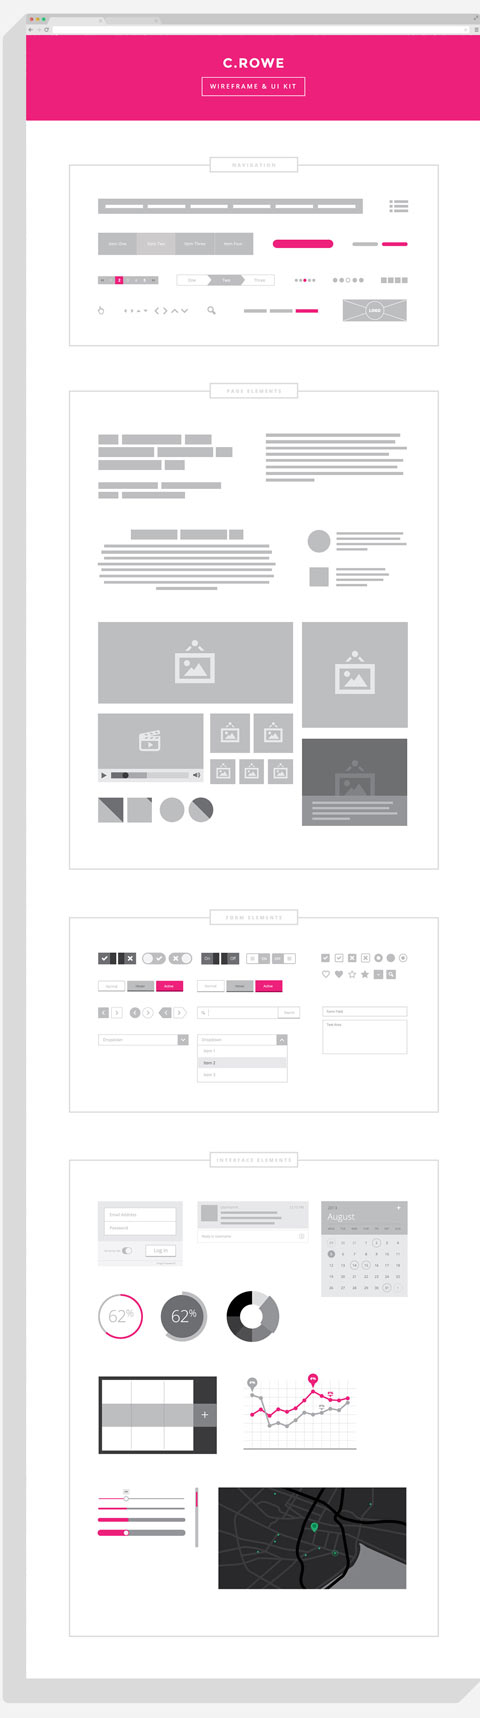 C-Rowe-wireframe-UI-kit_1